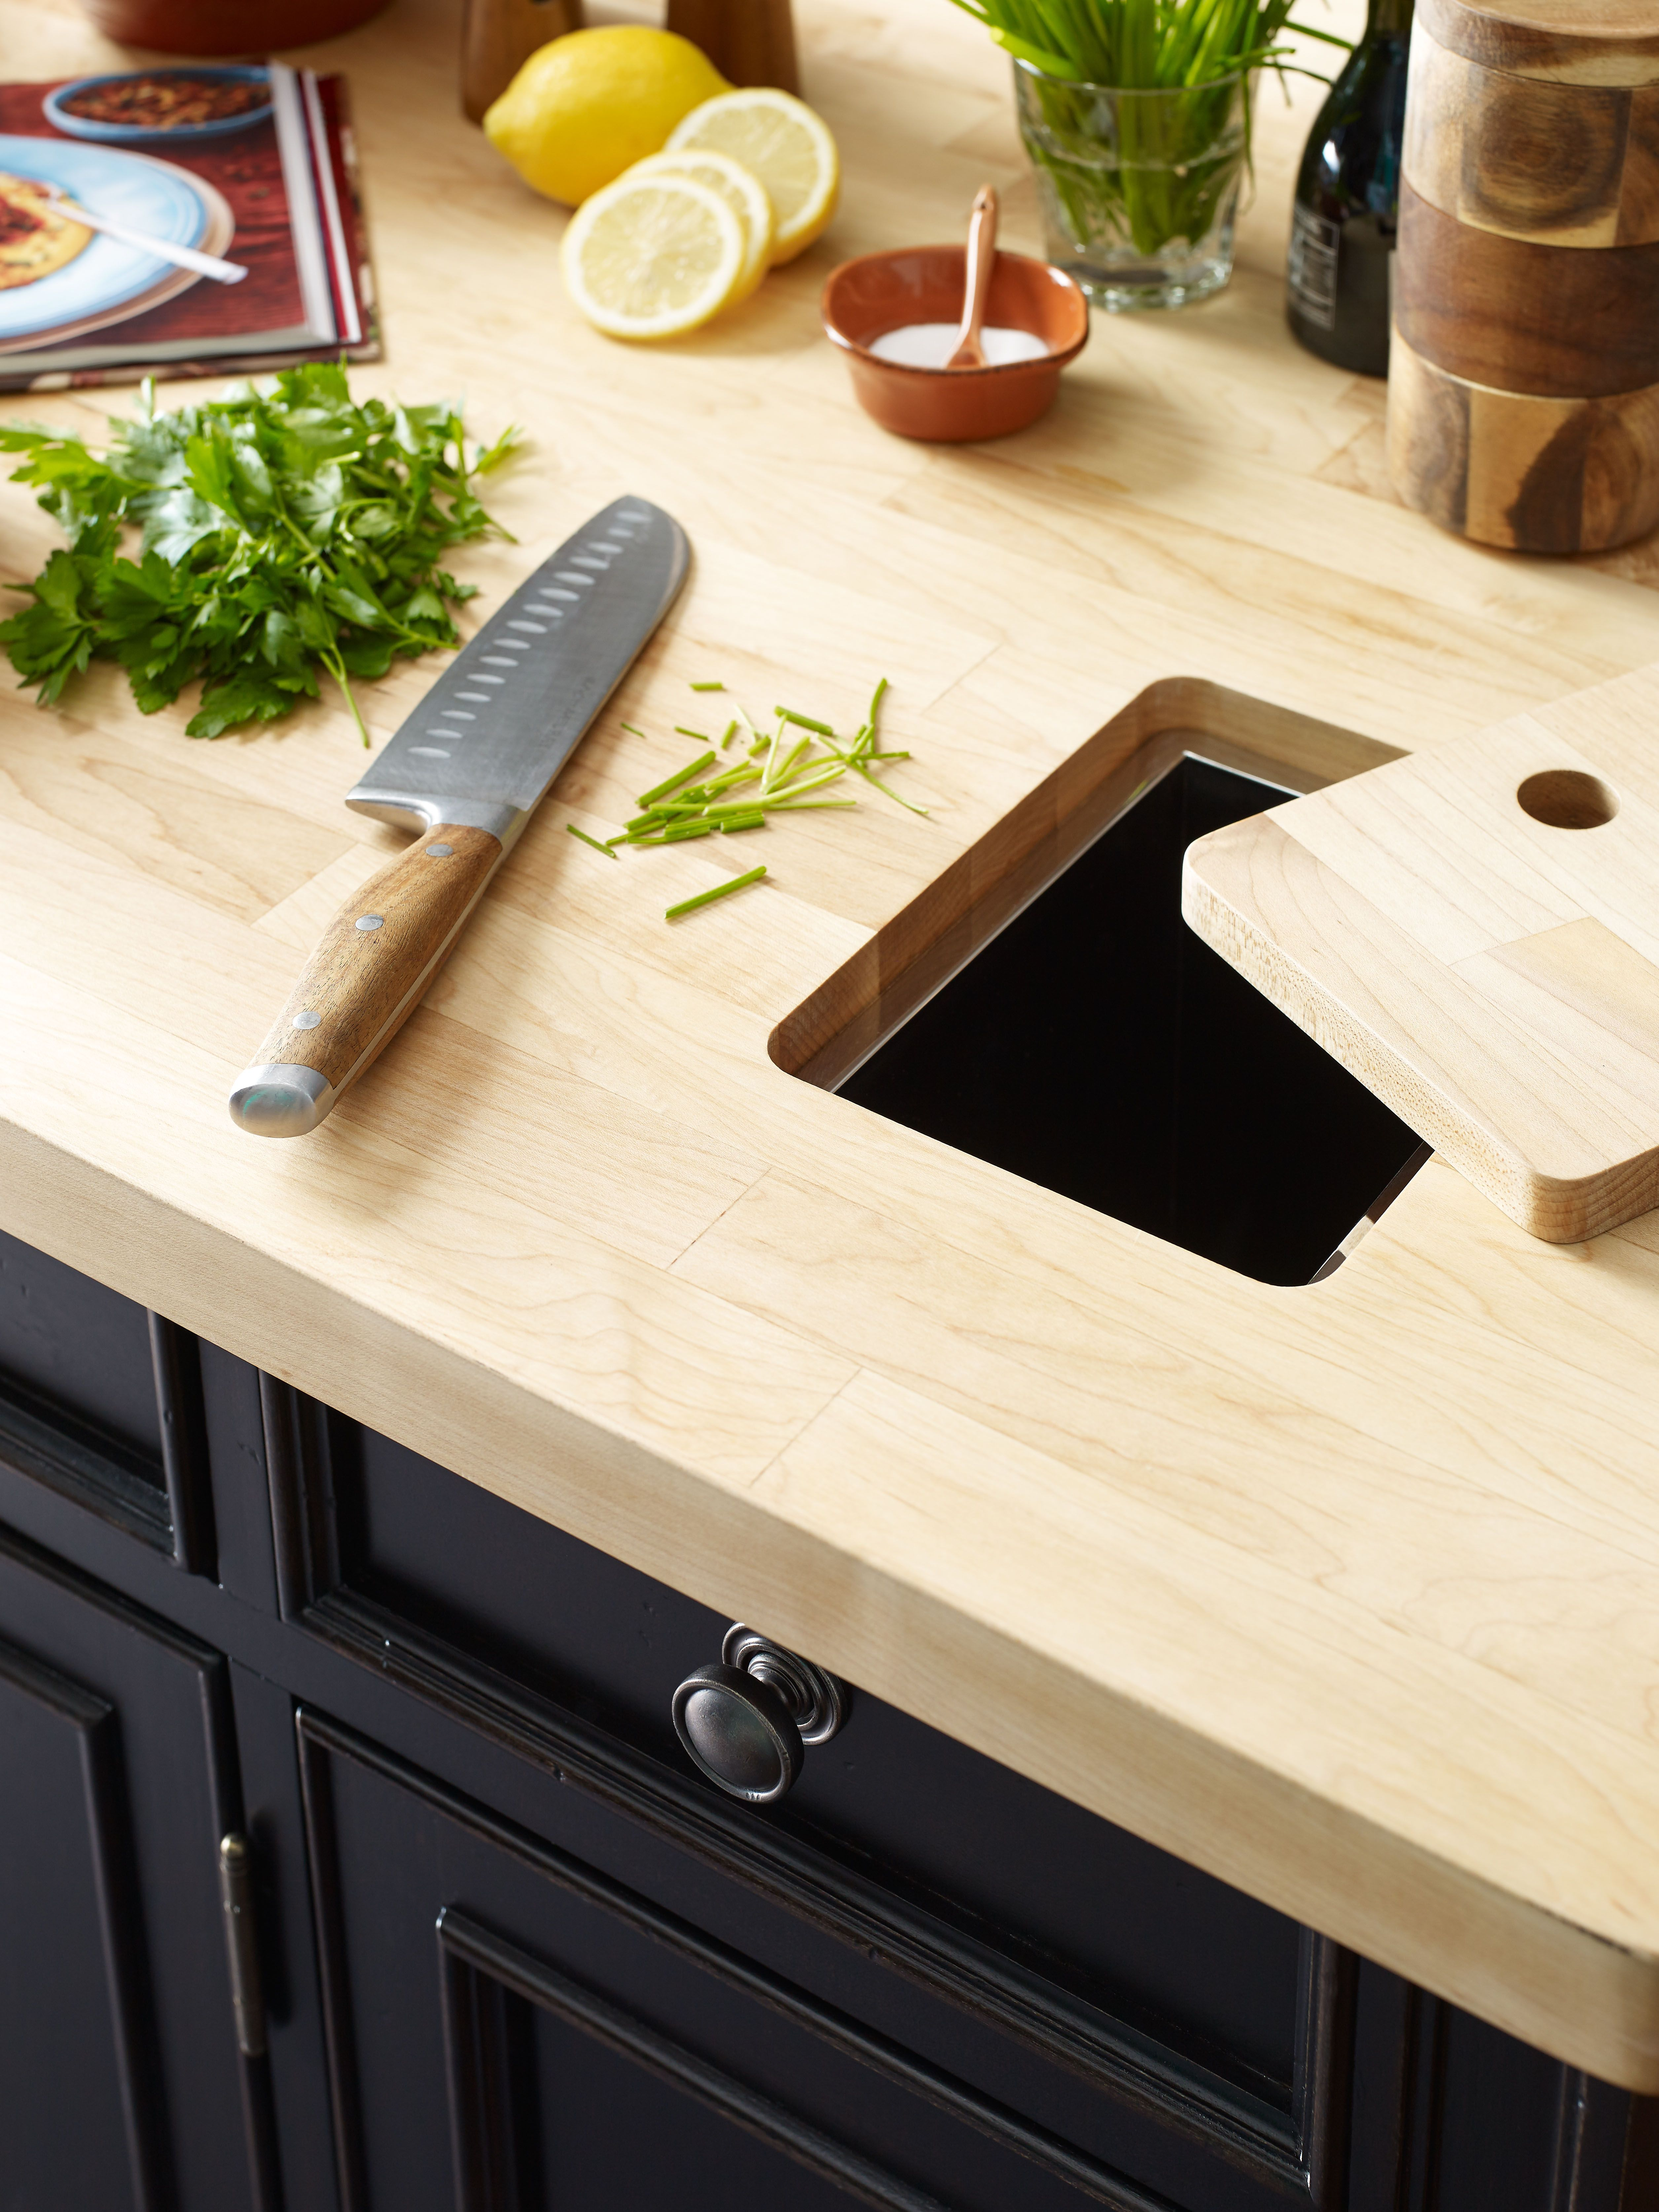 Pin On Insp Kitchen Cutting Board Countertop